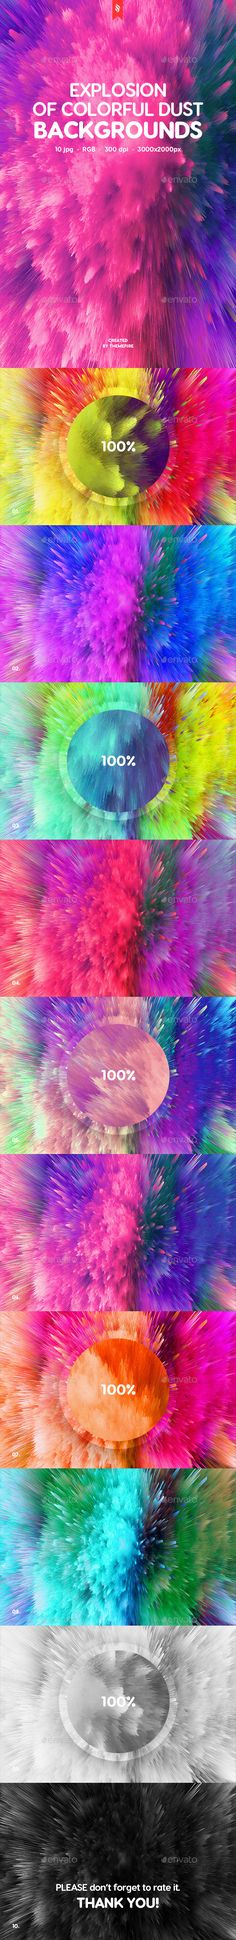 This pack contains 10 jpg abstract explosion of colorful dust backgrounds for your projects. You can use these backgrounds in the